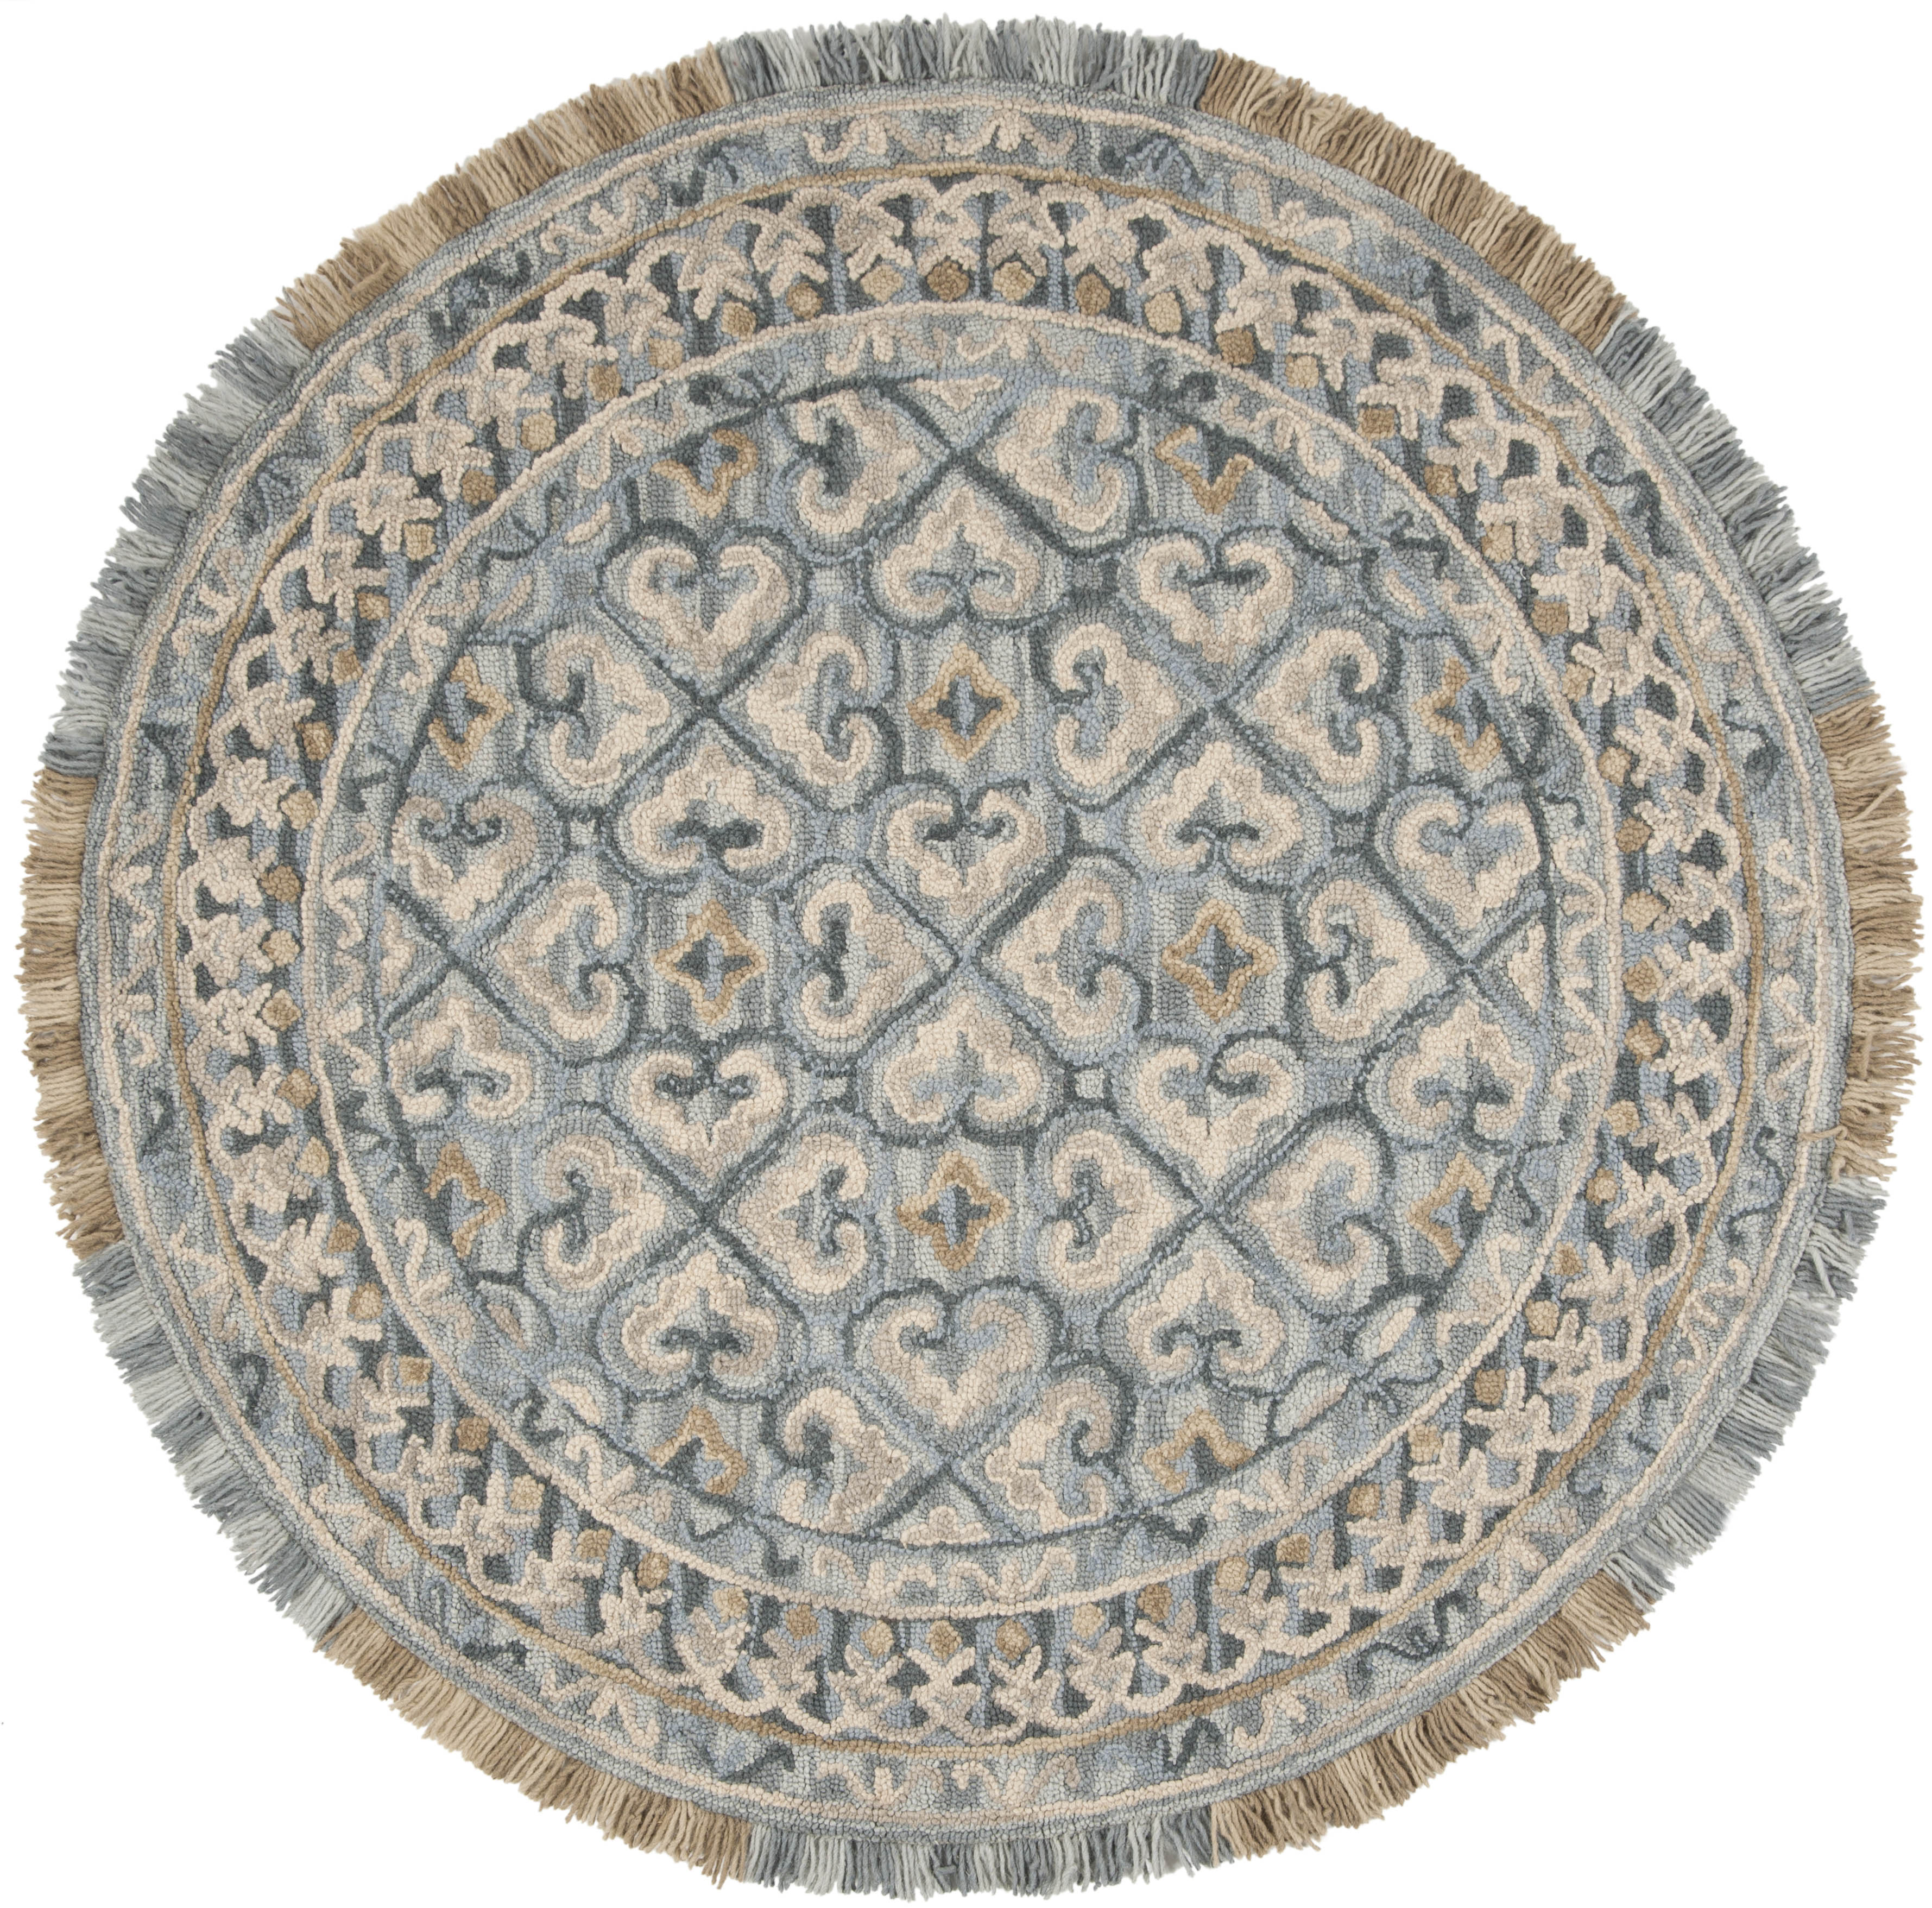 Morgan 420 6' X 6' Round Tan Wool Rug